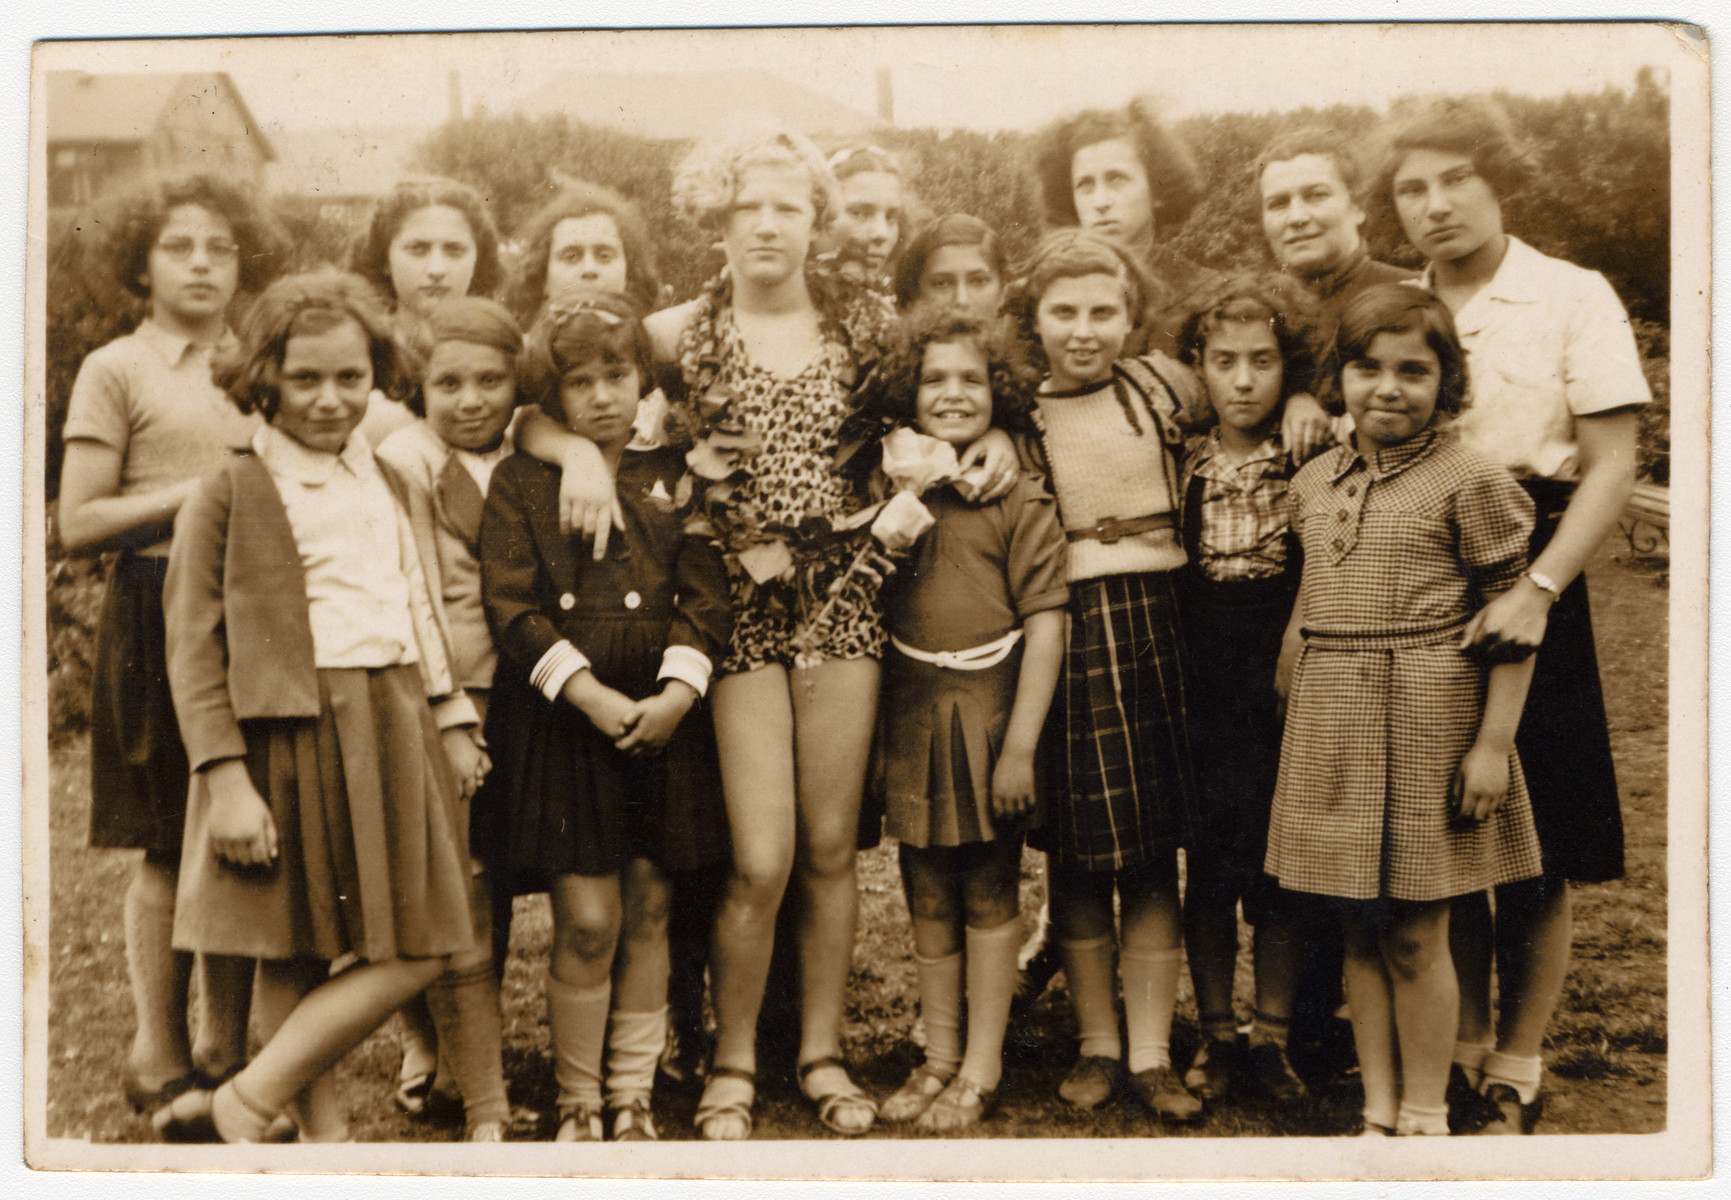 Group portrait of Jewish refugee girls who had come to England on a Kindertransport.